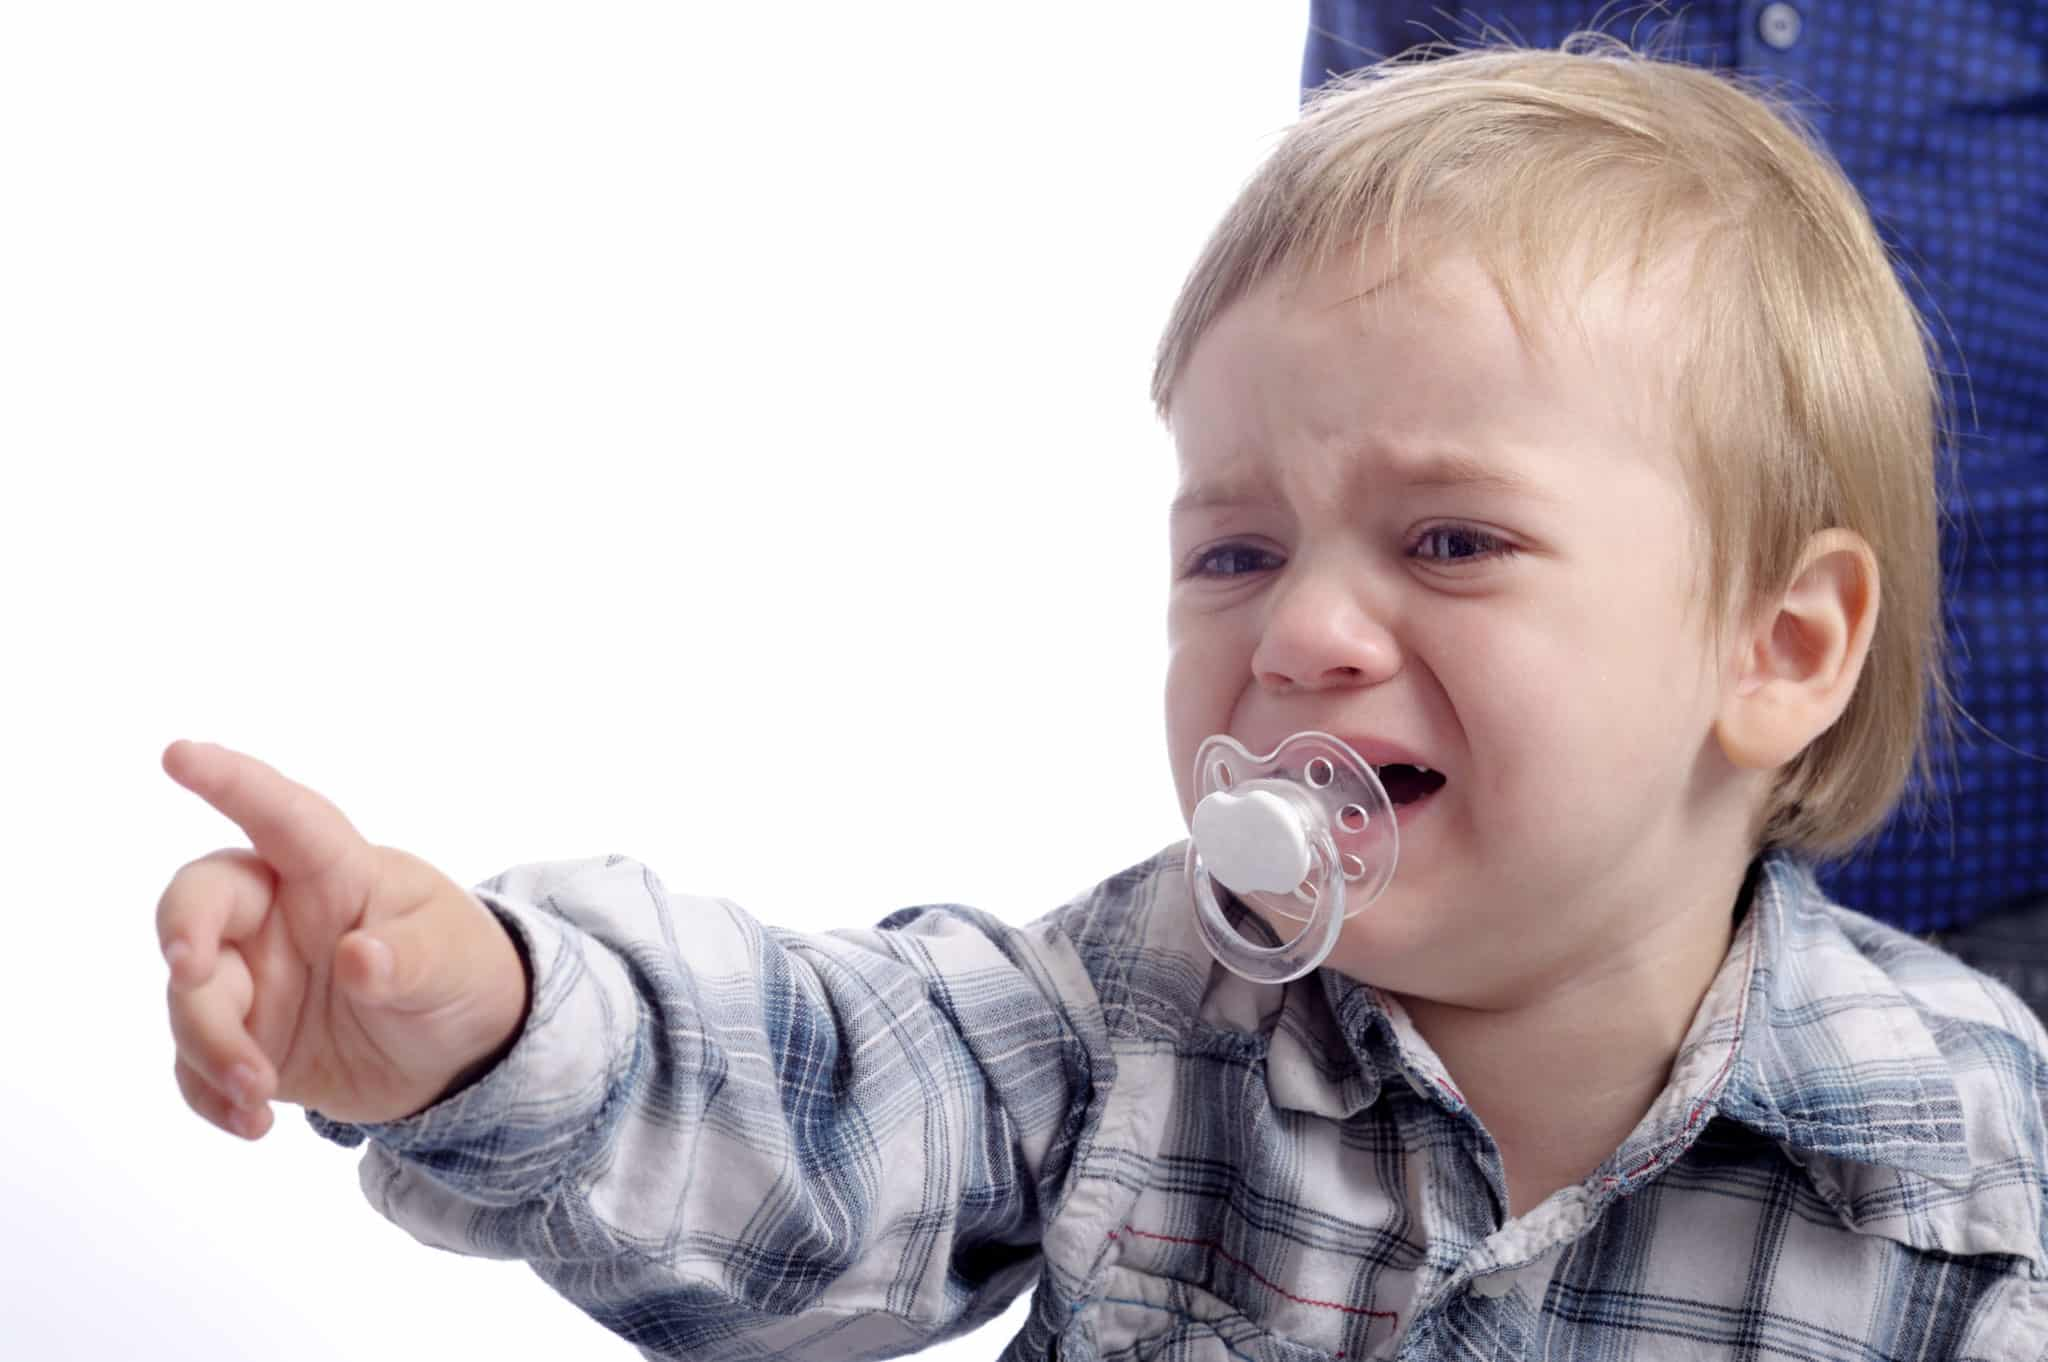 nonverbal crying child pointing with his finger